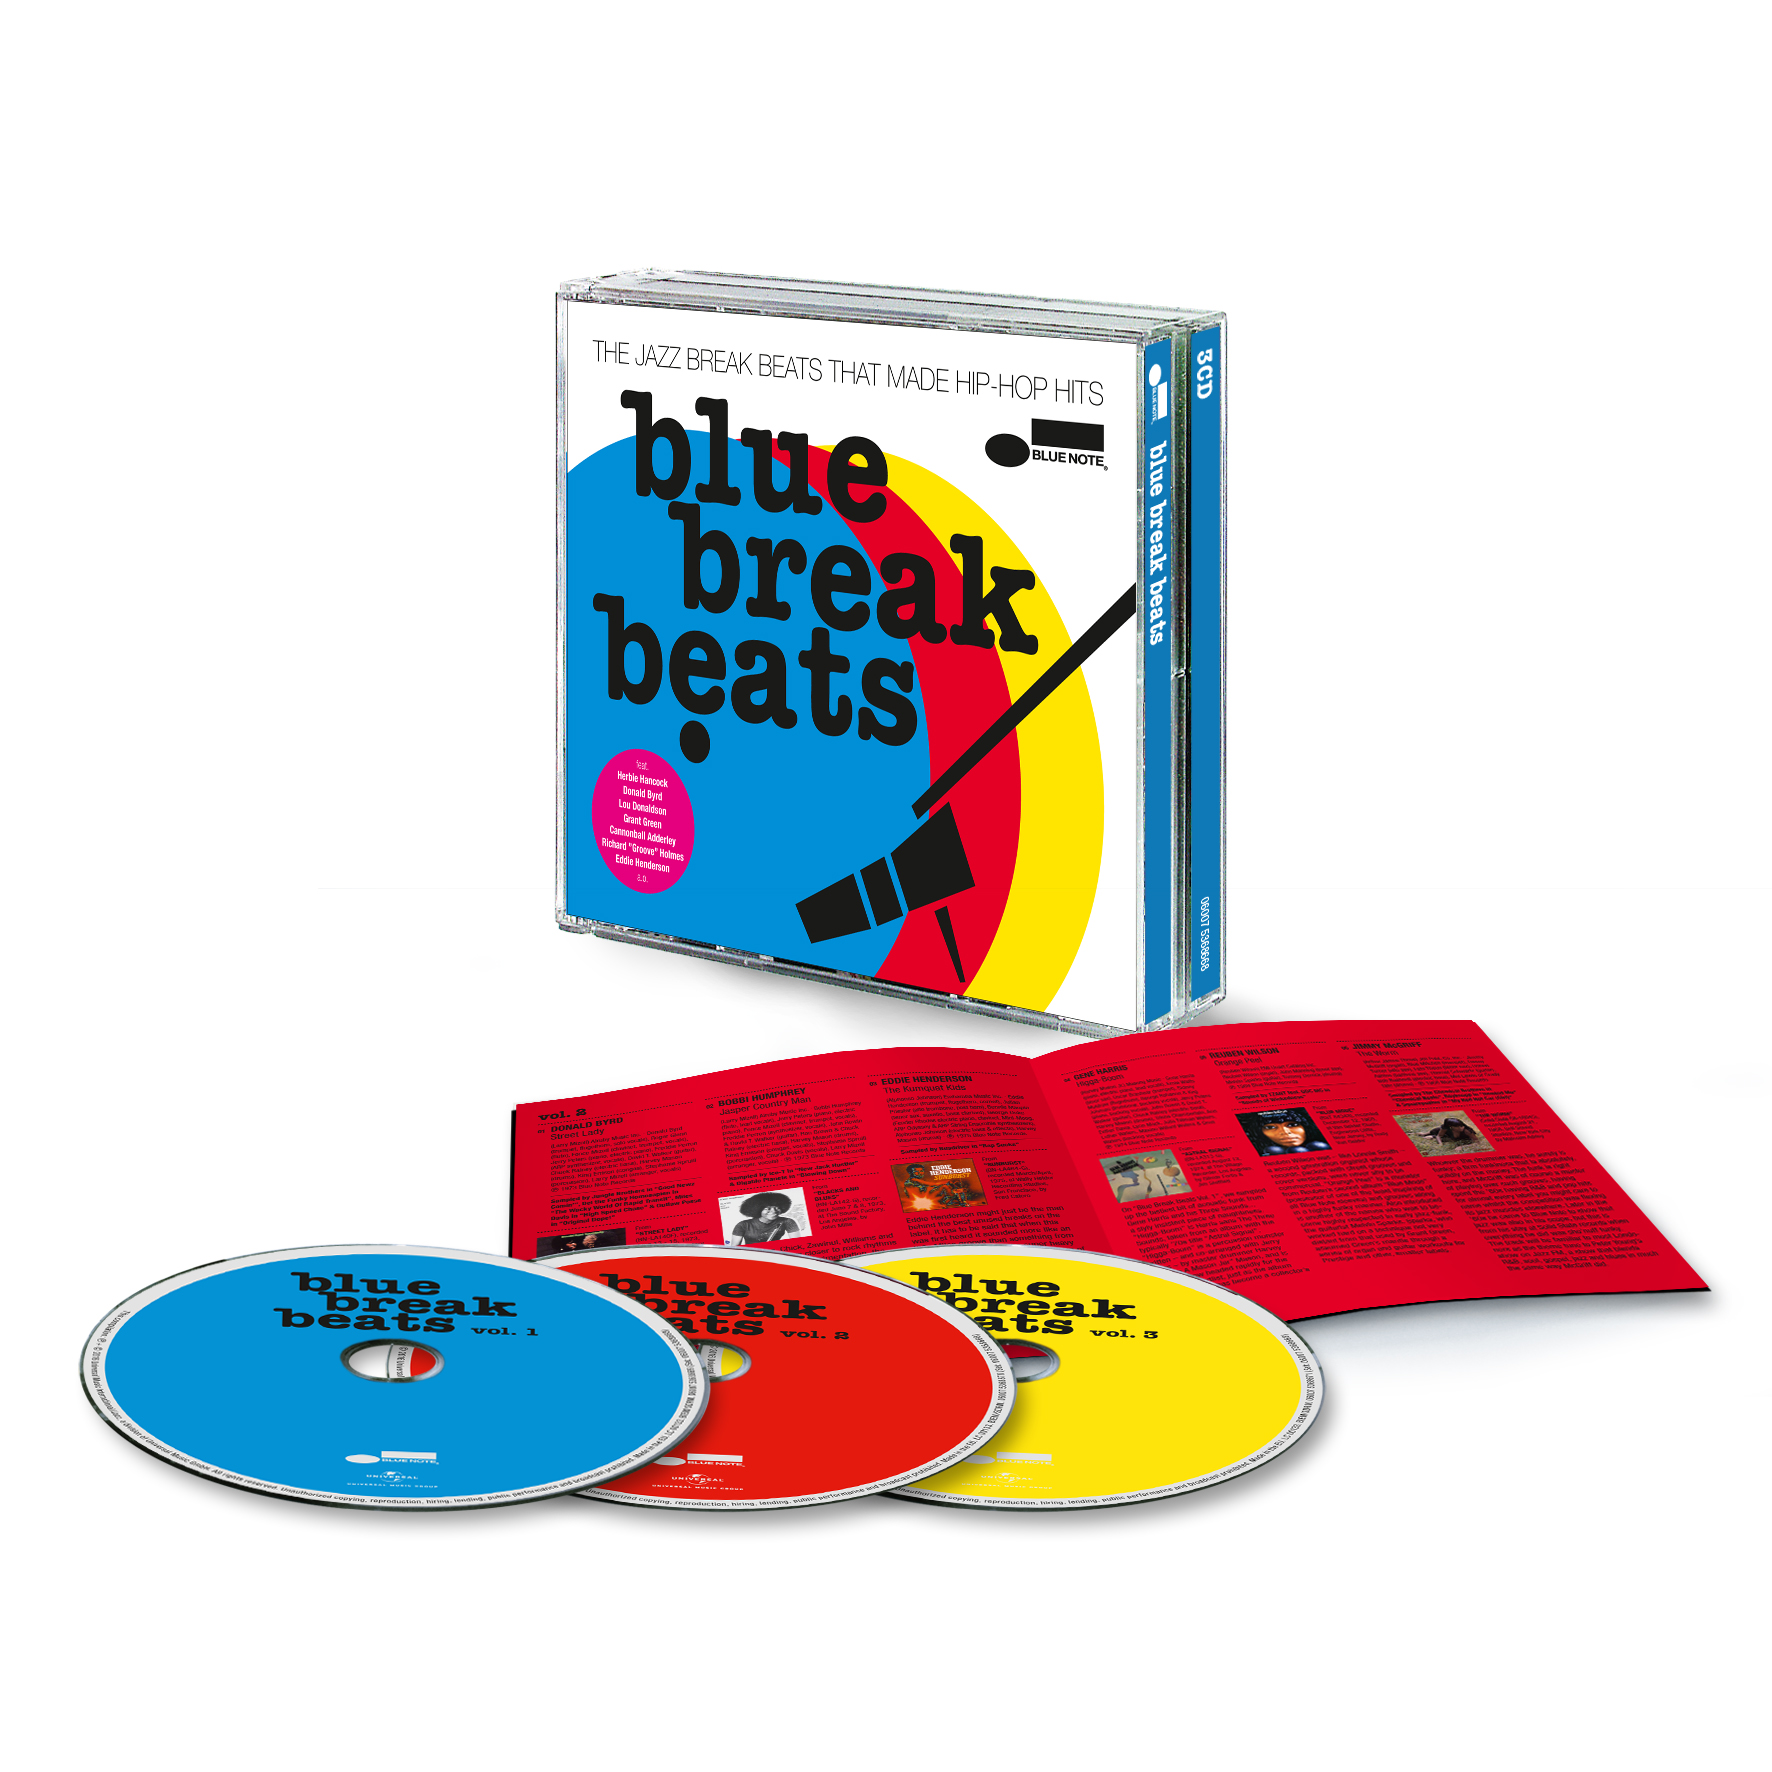 Blue Break Beats Box Set_06007 5368668_PACKSHOT